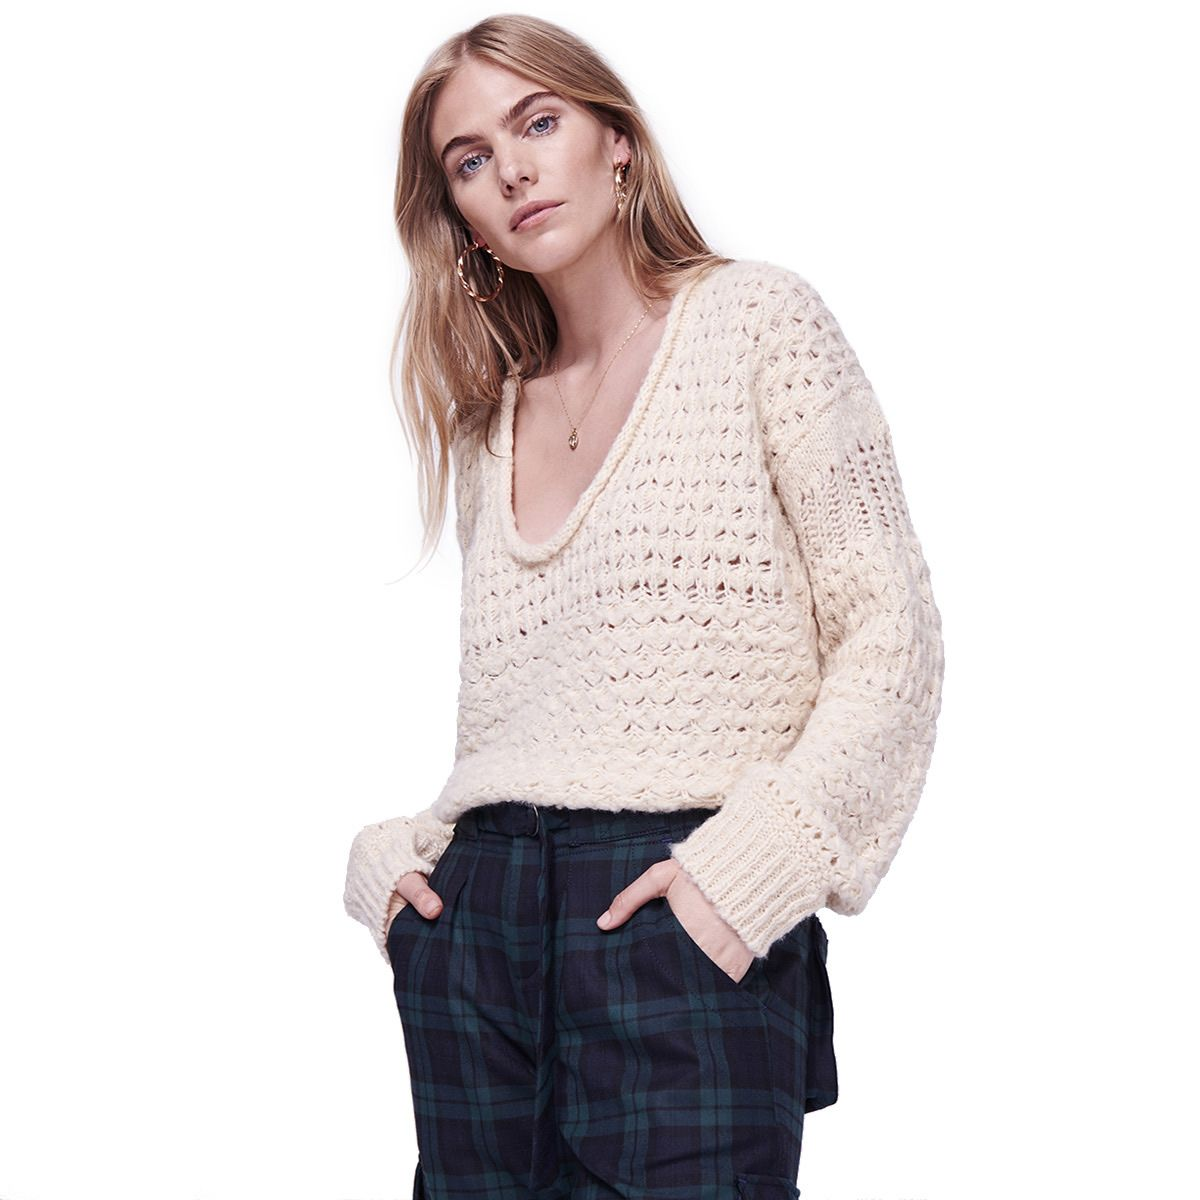 24e0be716a Free People Women's Sweaters - Macy's